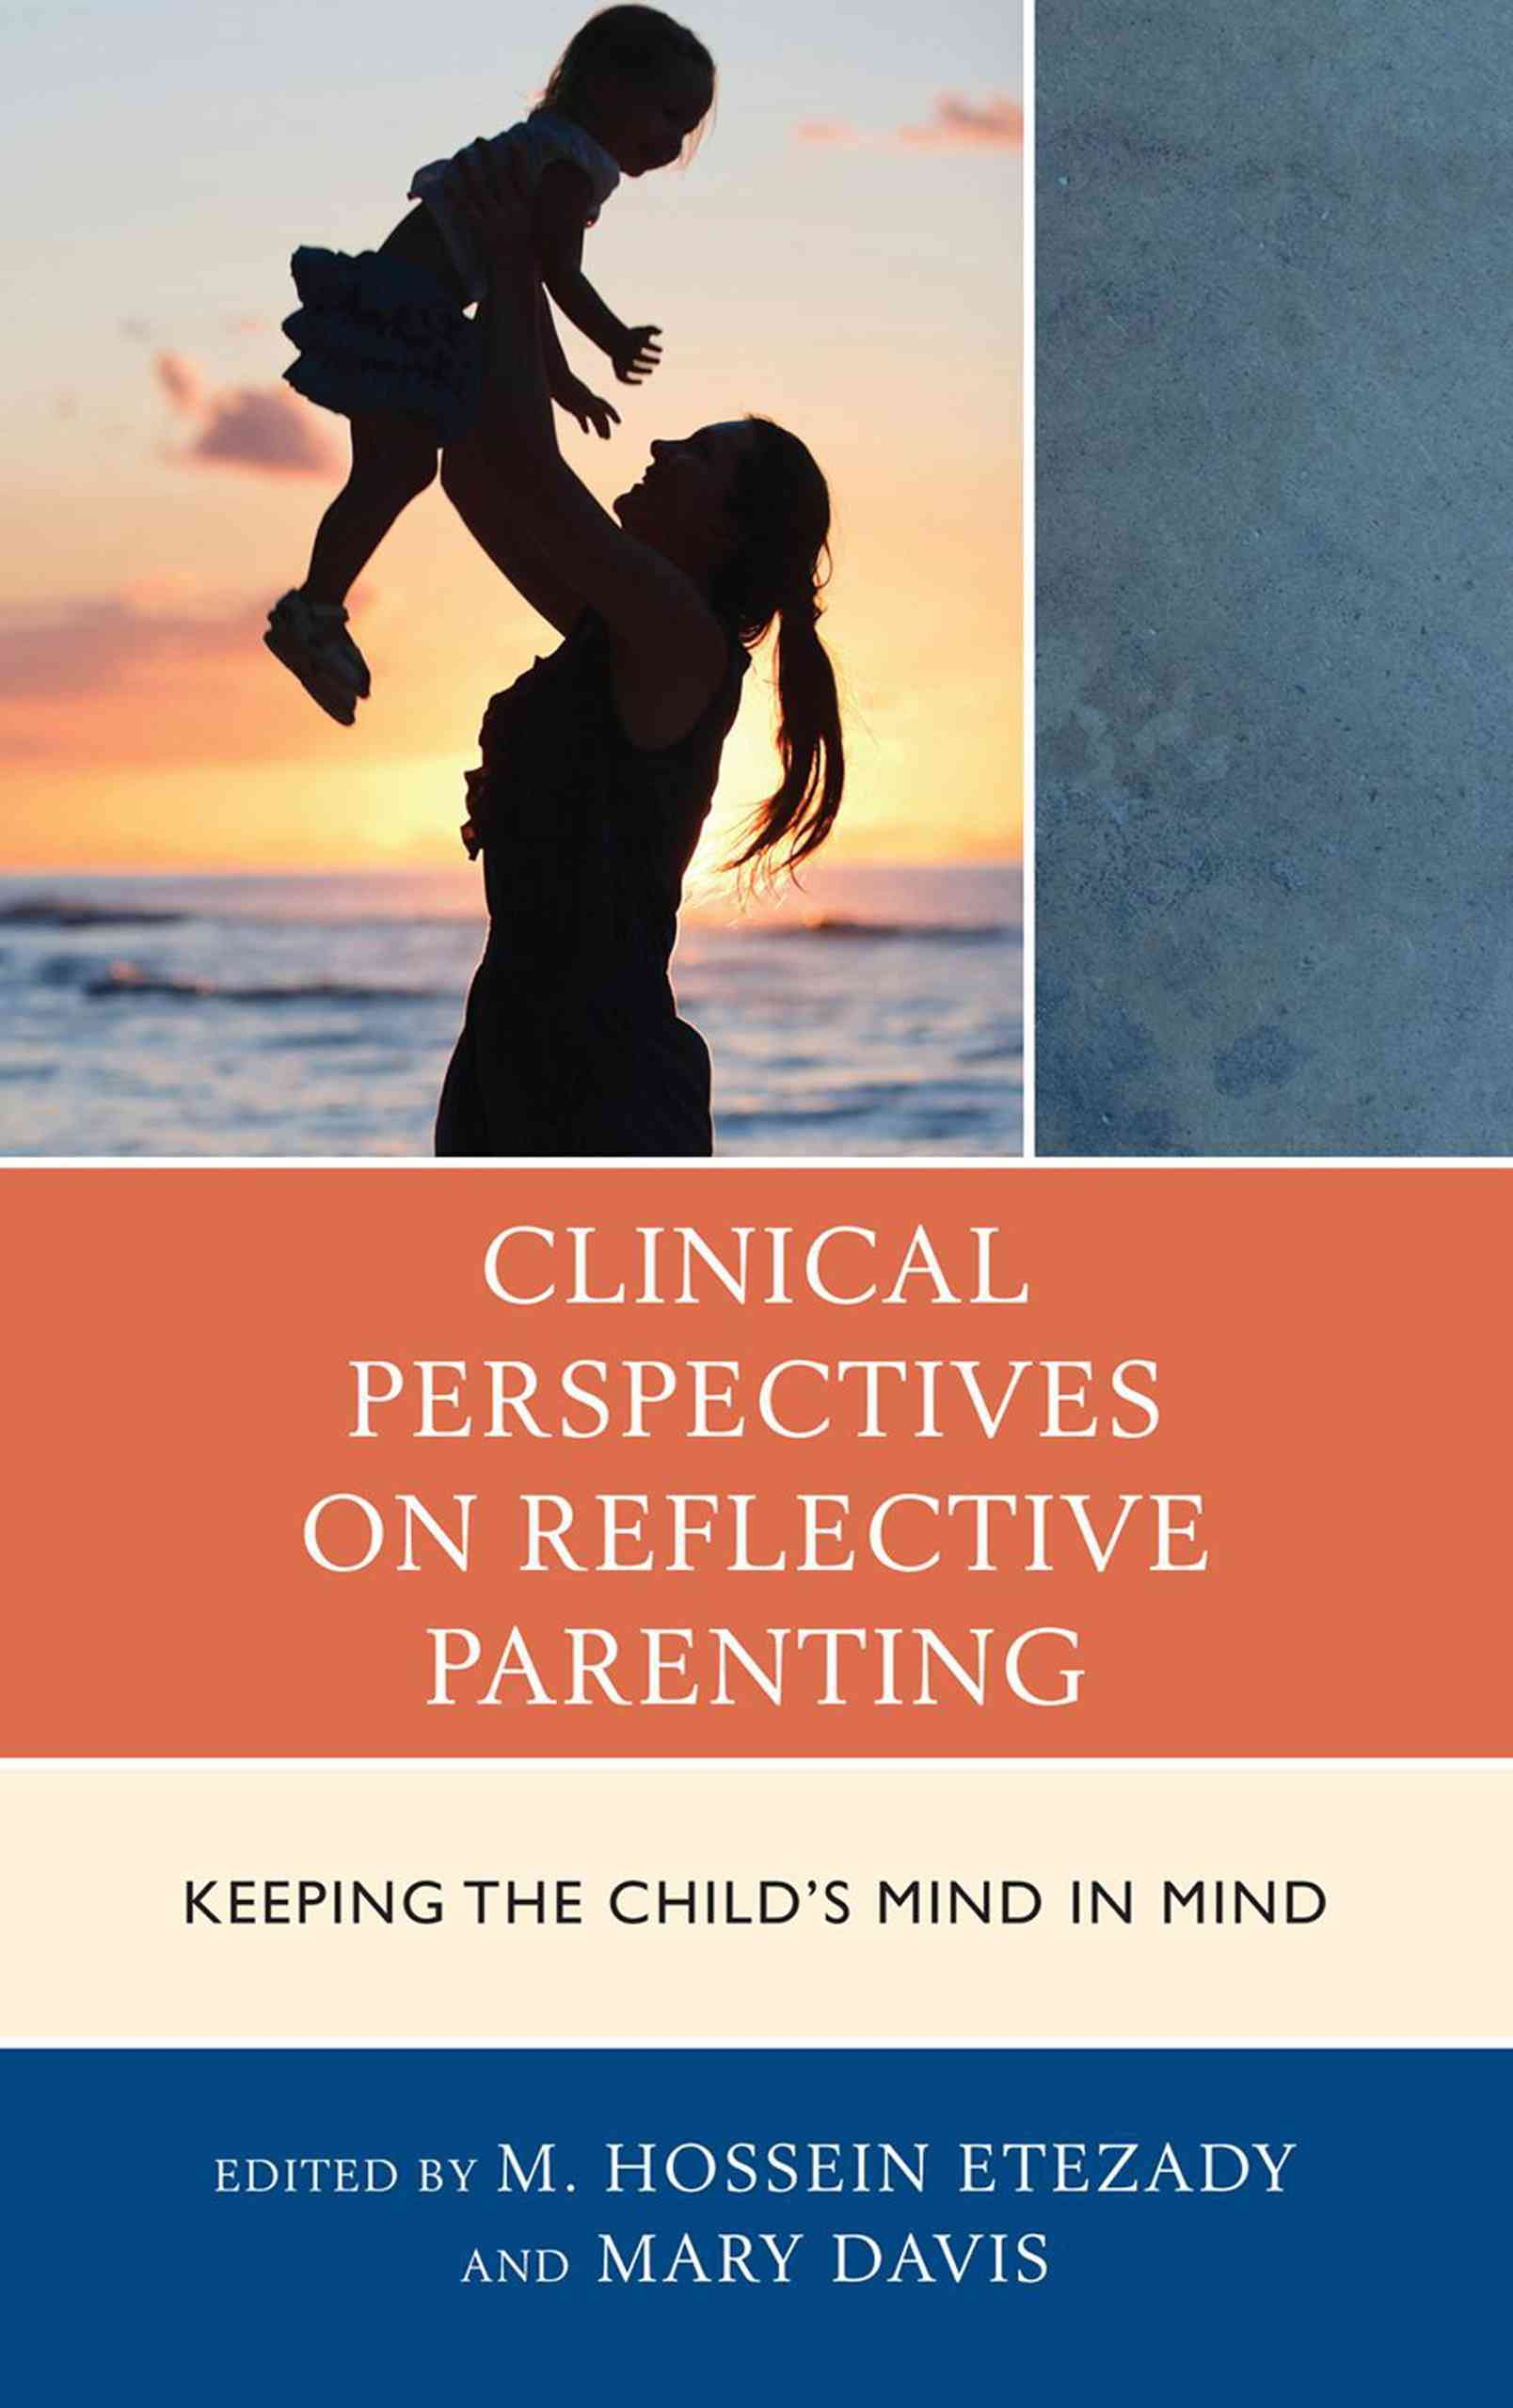 Clinical Perspectives on Reflective Parenting: Keeping the Child's Mind in Mind (Hardcover)